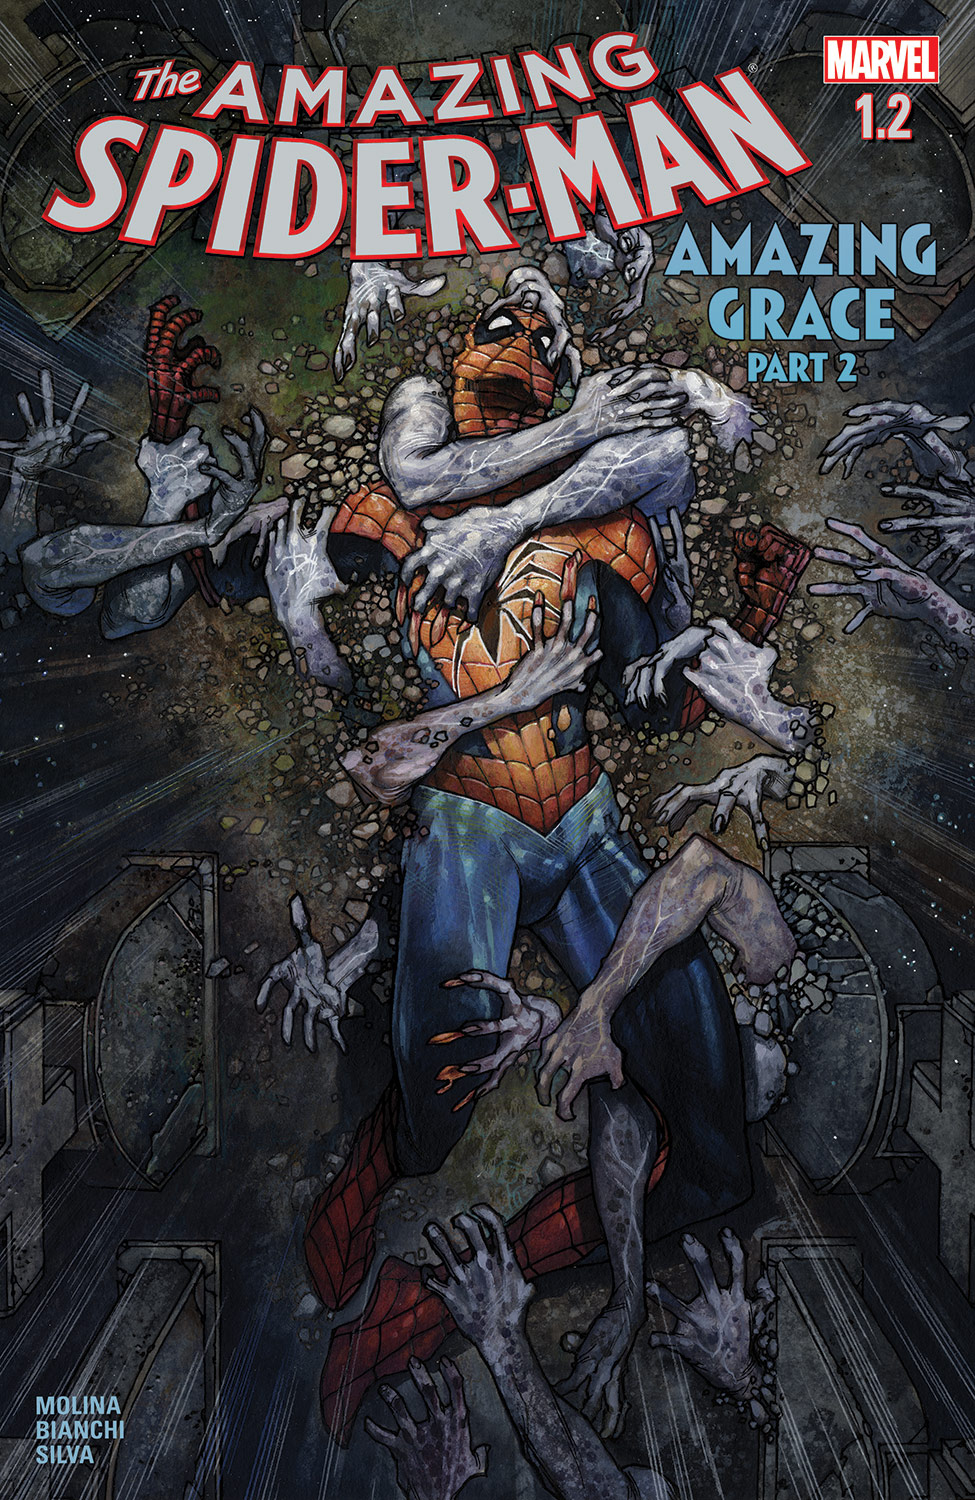 The Amazing Spider-Man (2015) #1.2